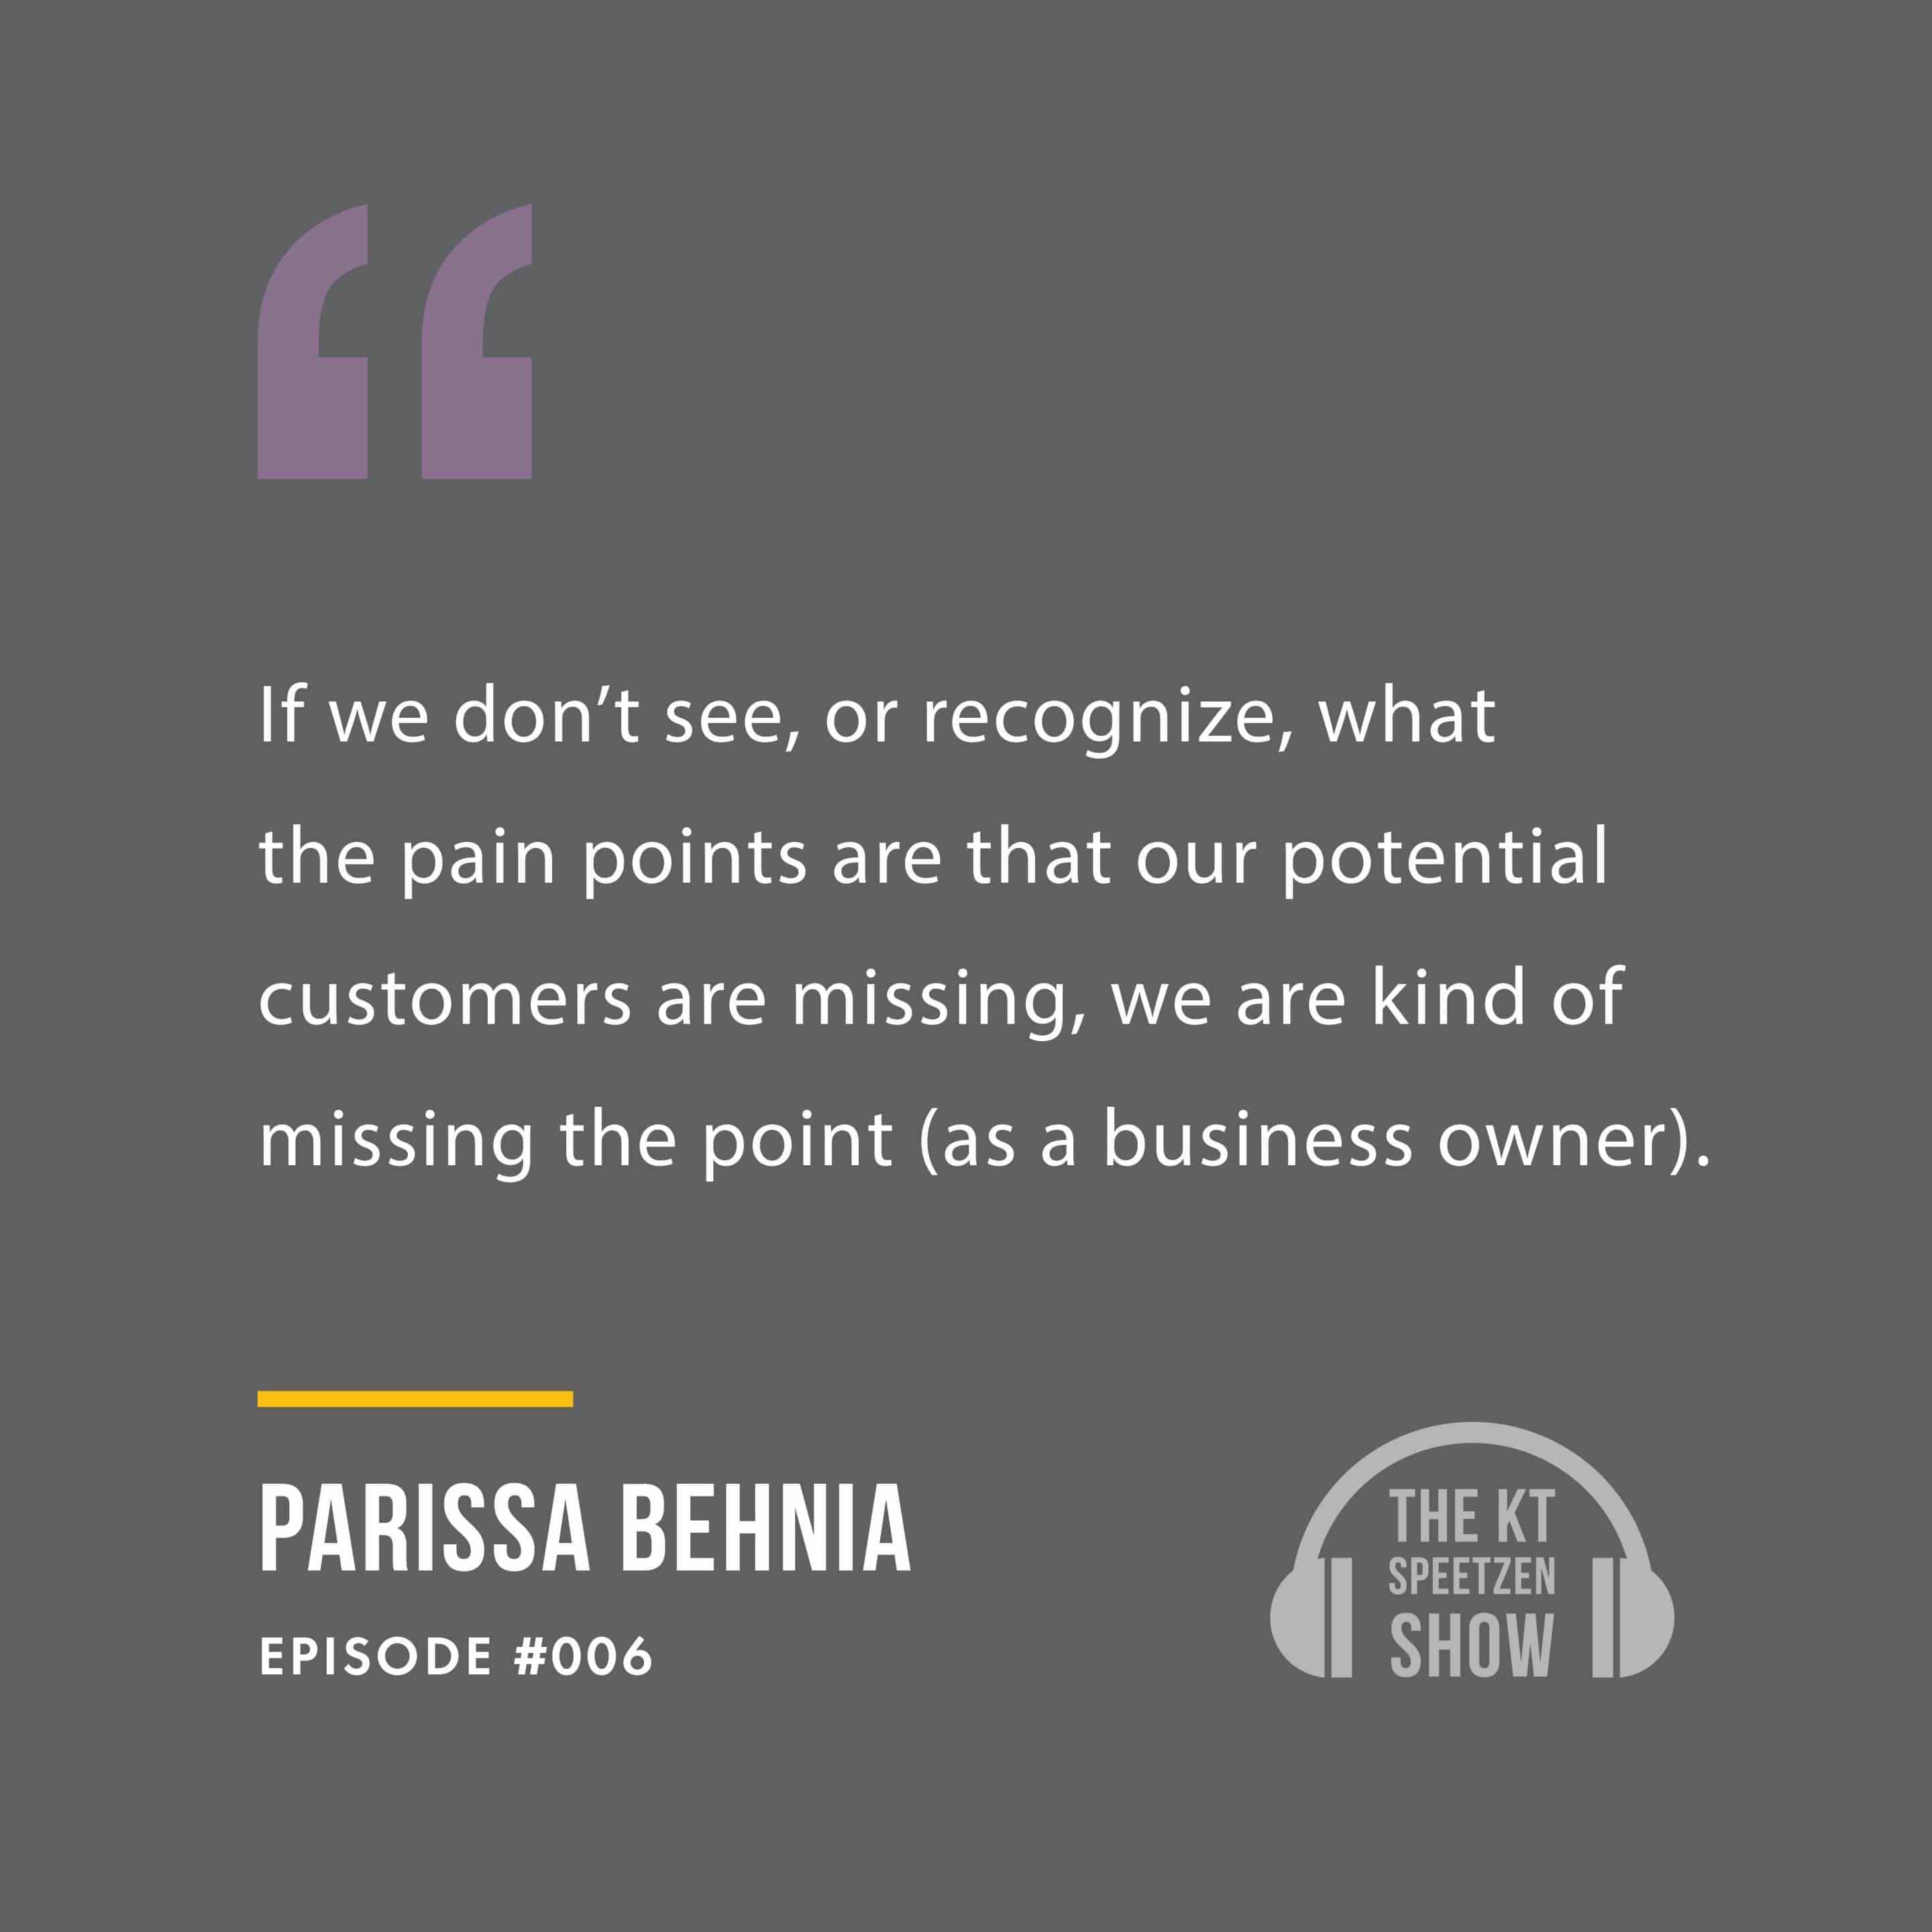 Parissa Behnia, featured on the podcast KT Speetzen Presents